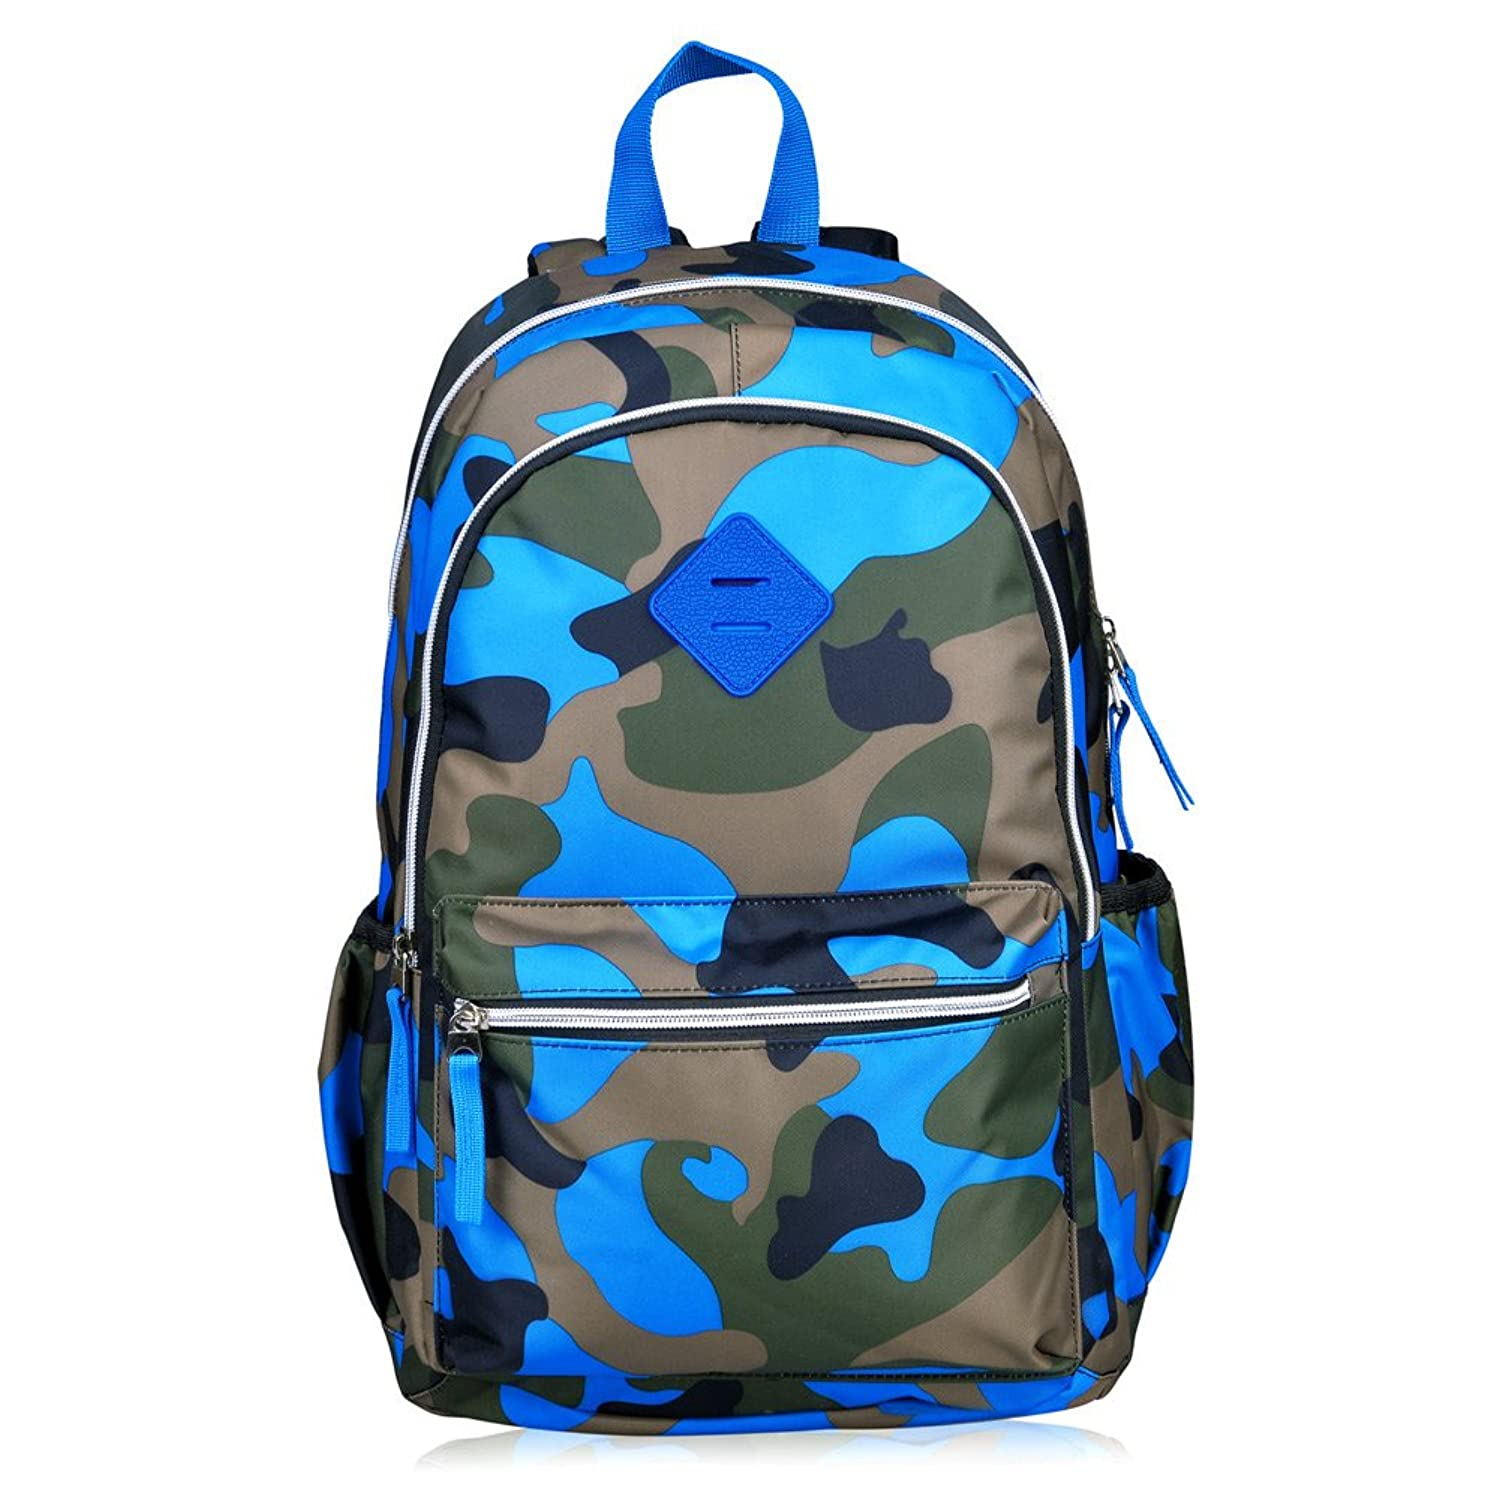 vbiger girl s boy s backpack for middle school cute